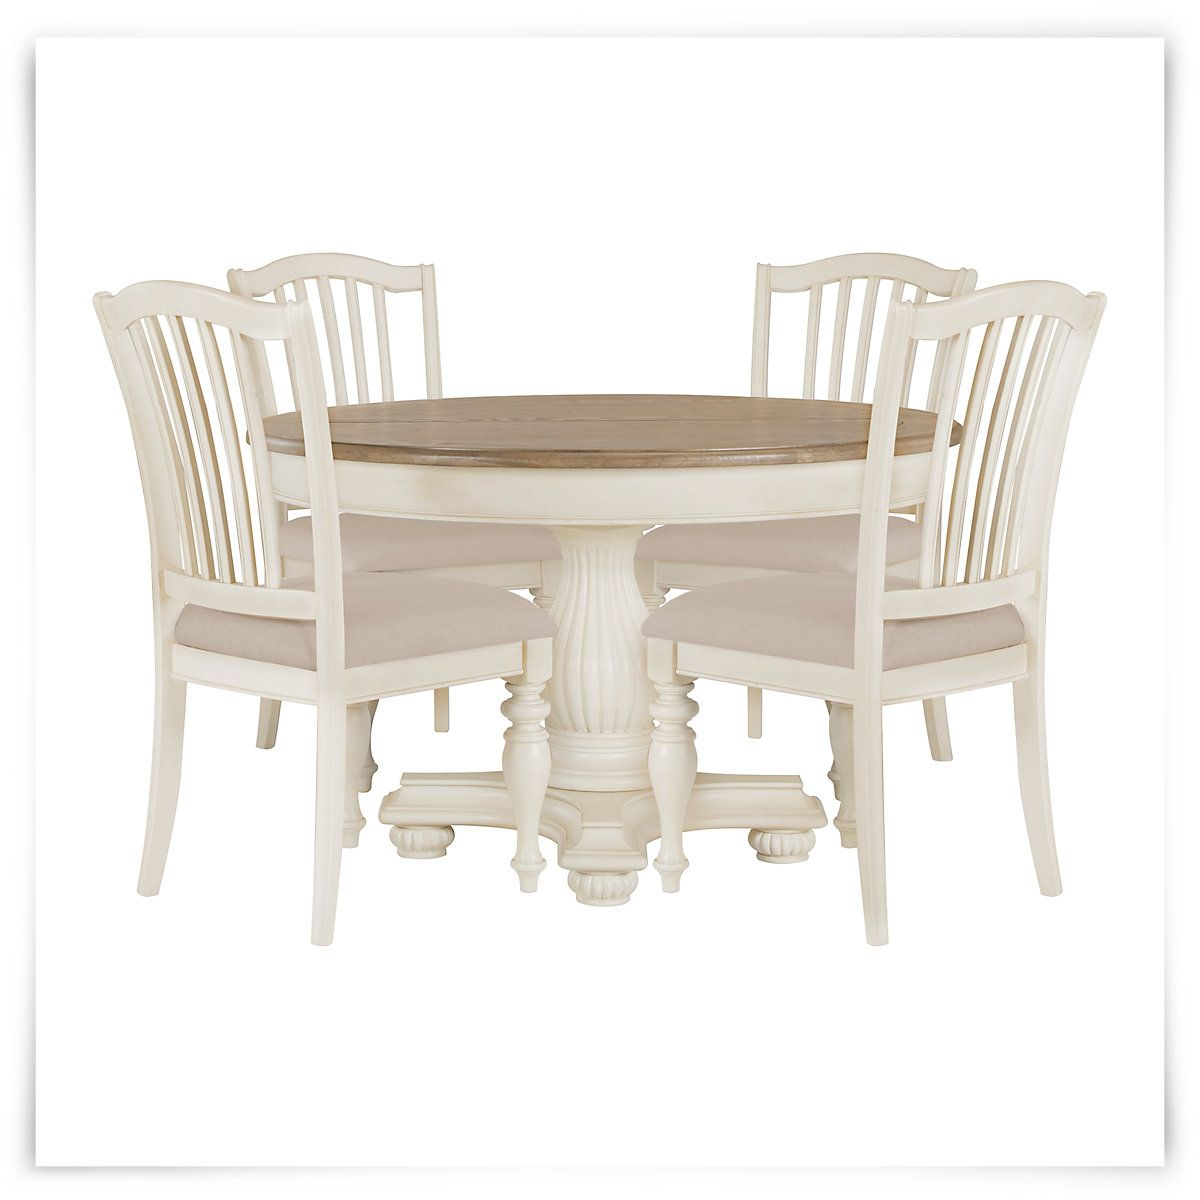 Coventry Two Tone Round Table 4 Wood Chairs Round Dining Table Sets City Furniture Wood Chair